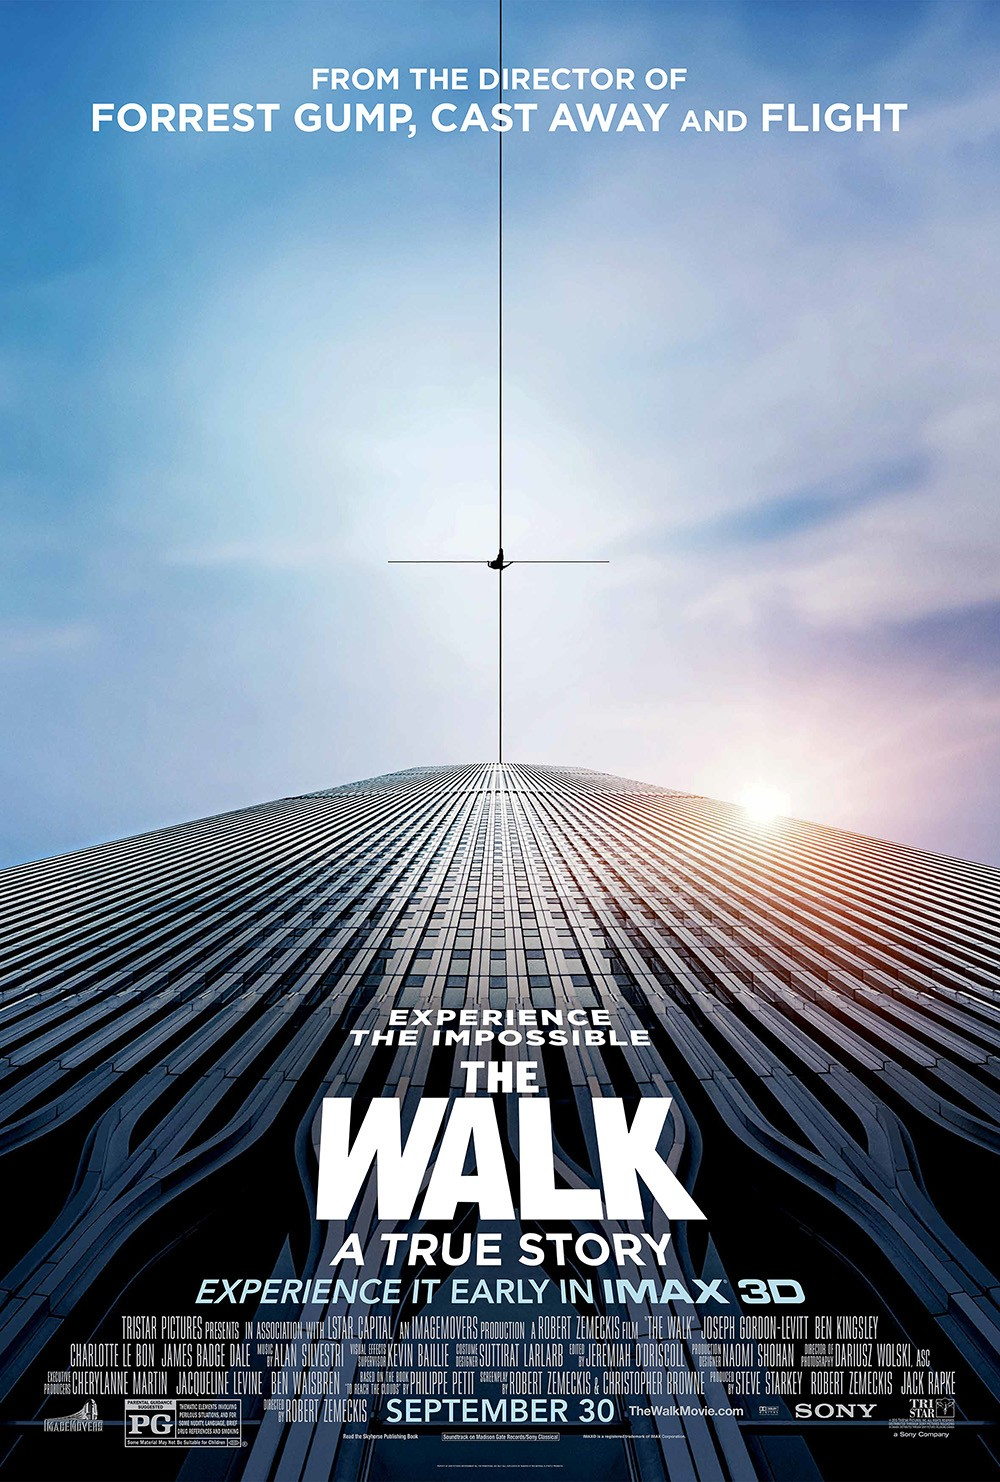 Loudinni Thinks You Shouldn't Forget About 'The Walk' | The Walk